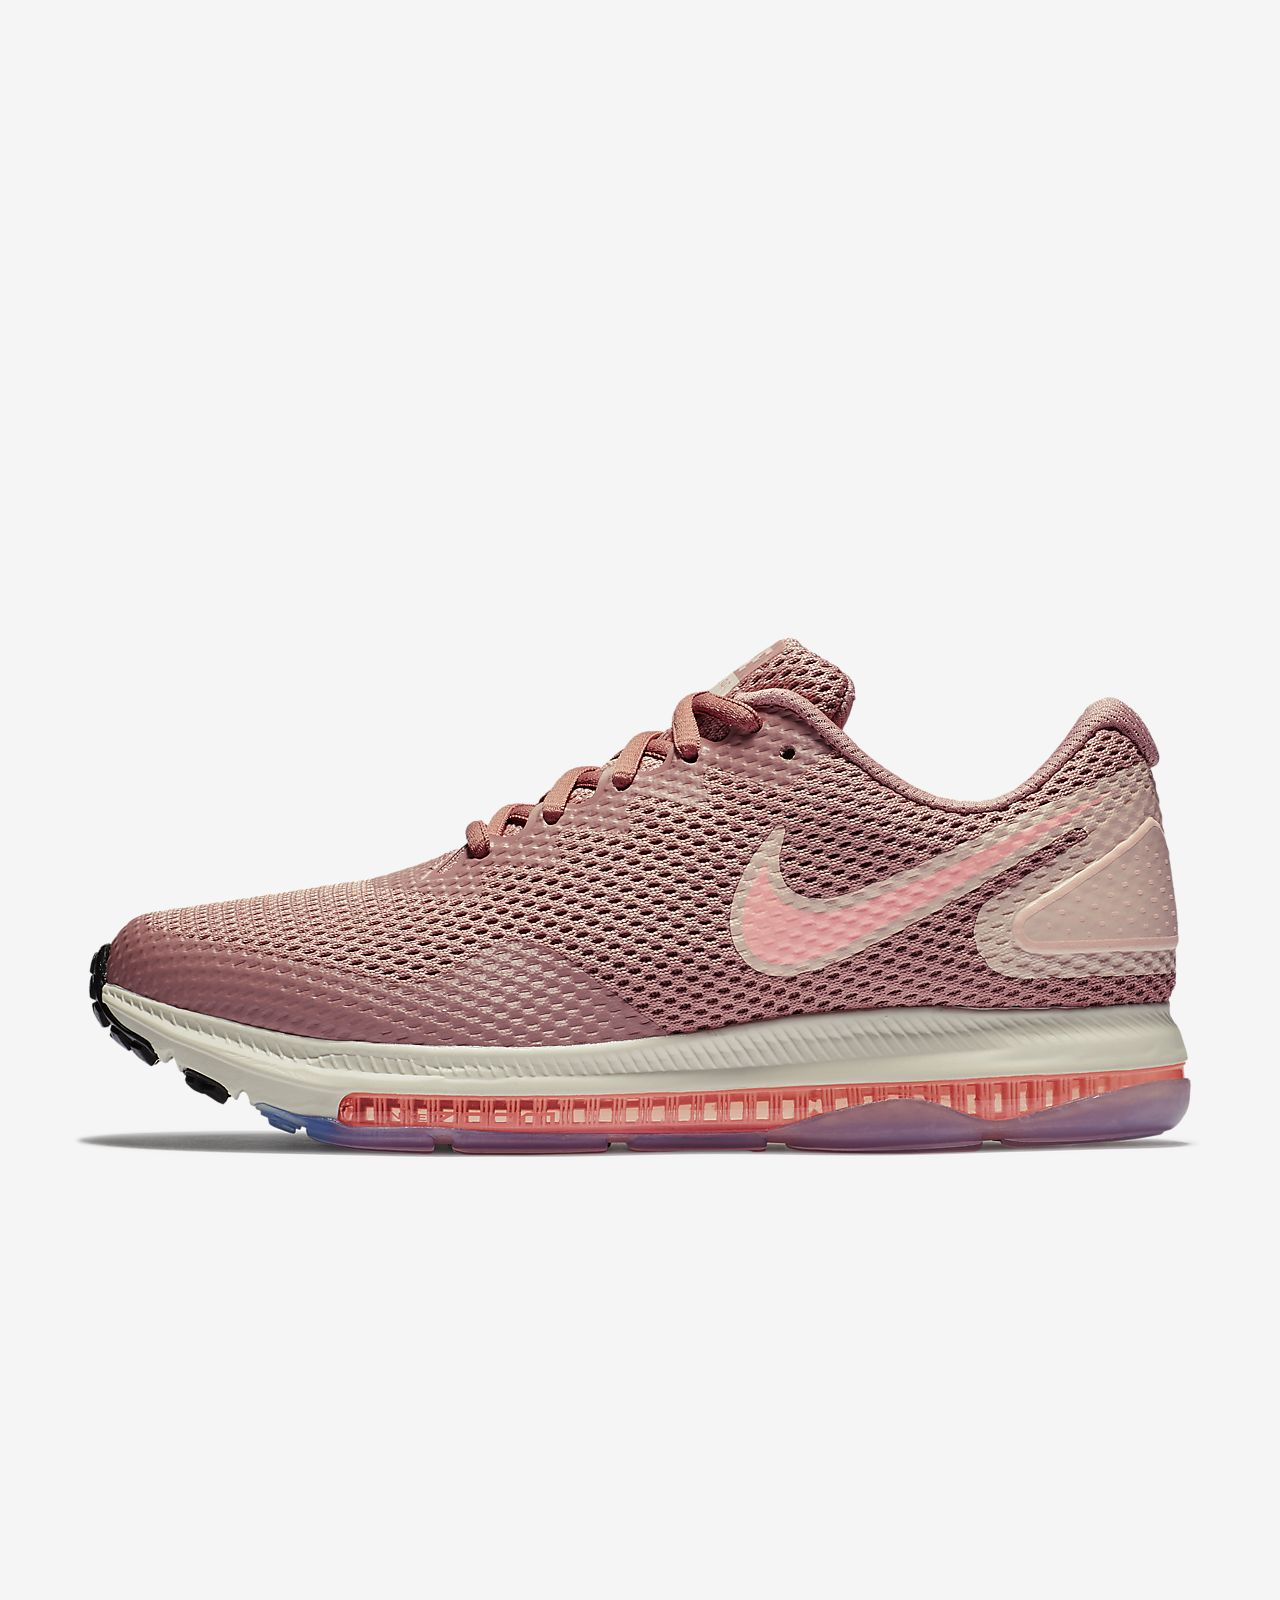 54e2632c9224 ... italy nike zoom all out low 2 womens running shoe 5844e cef51